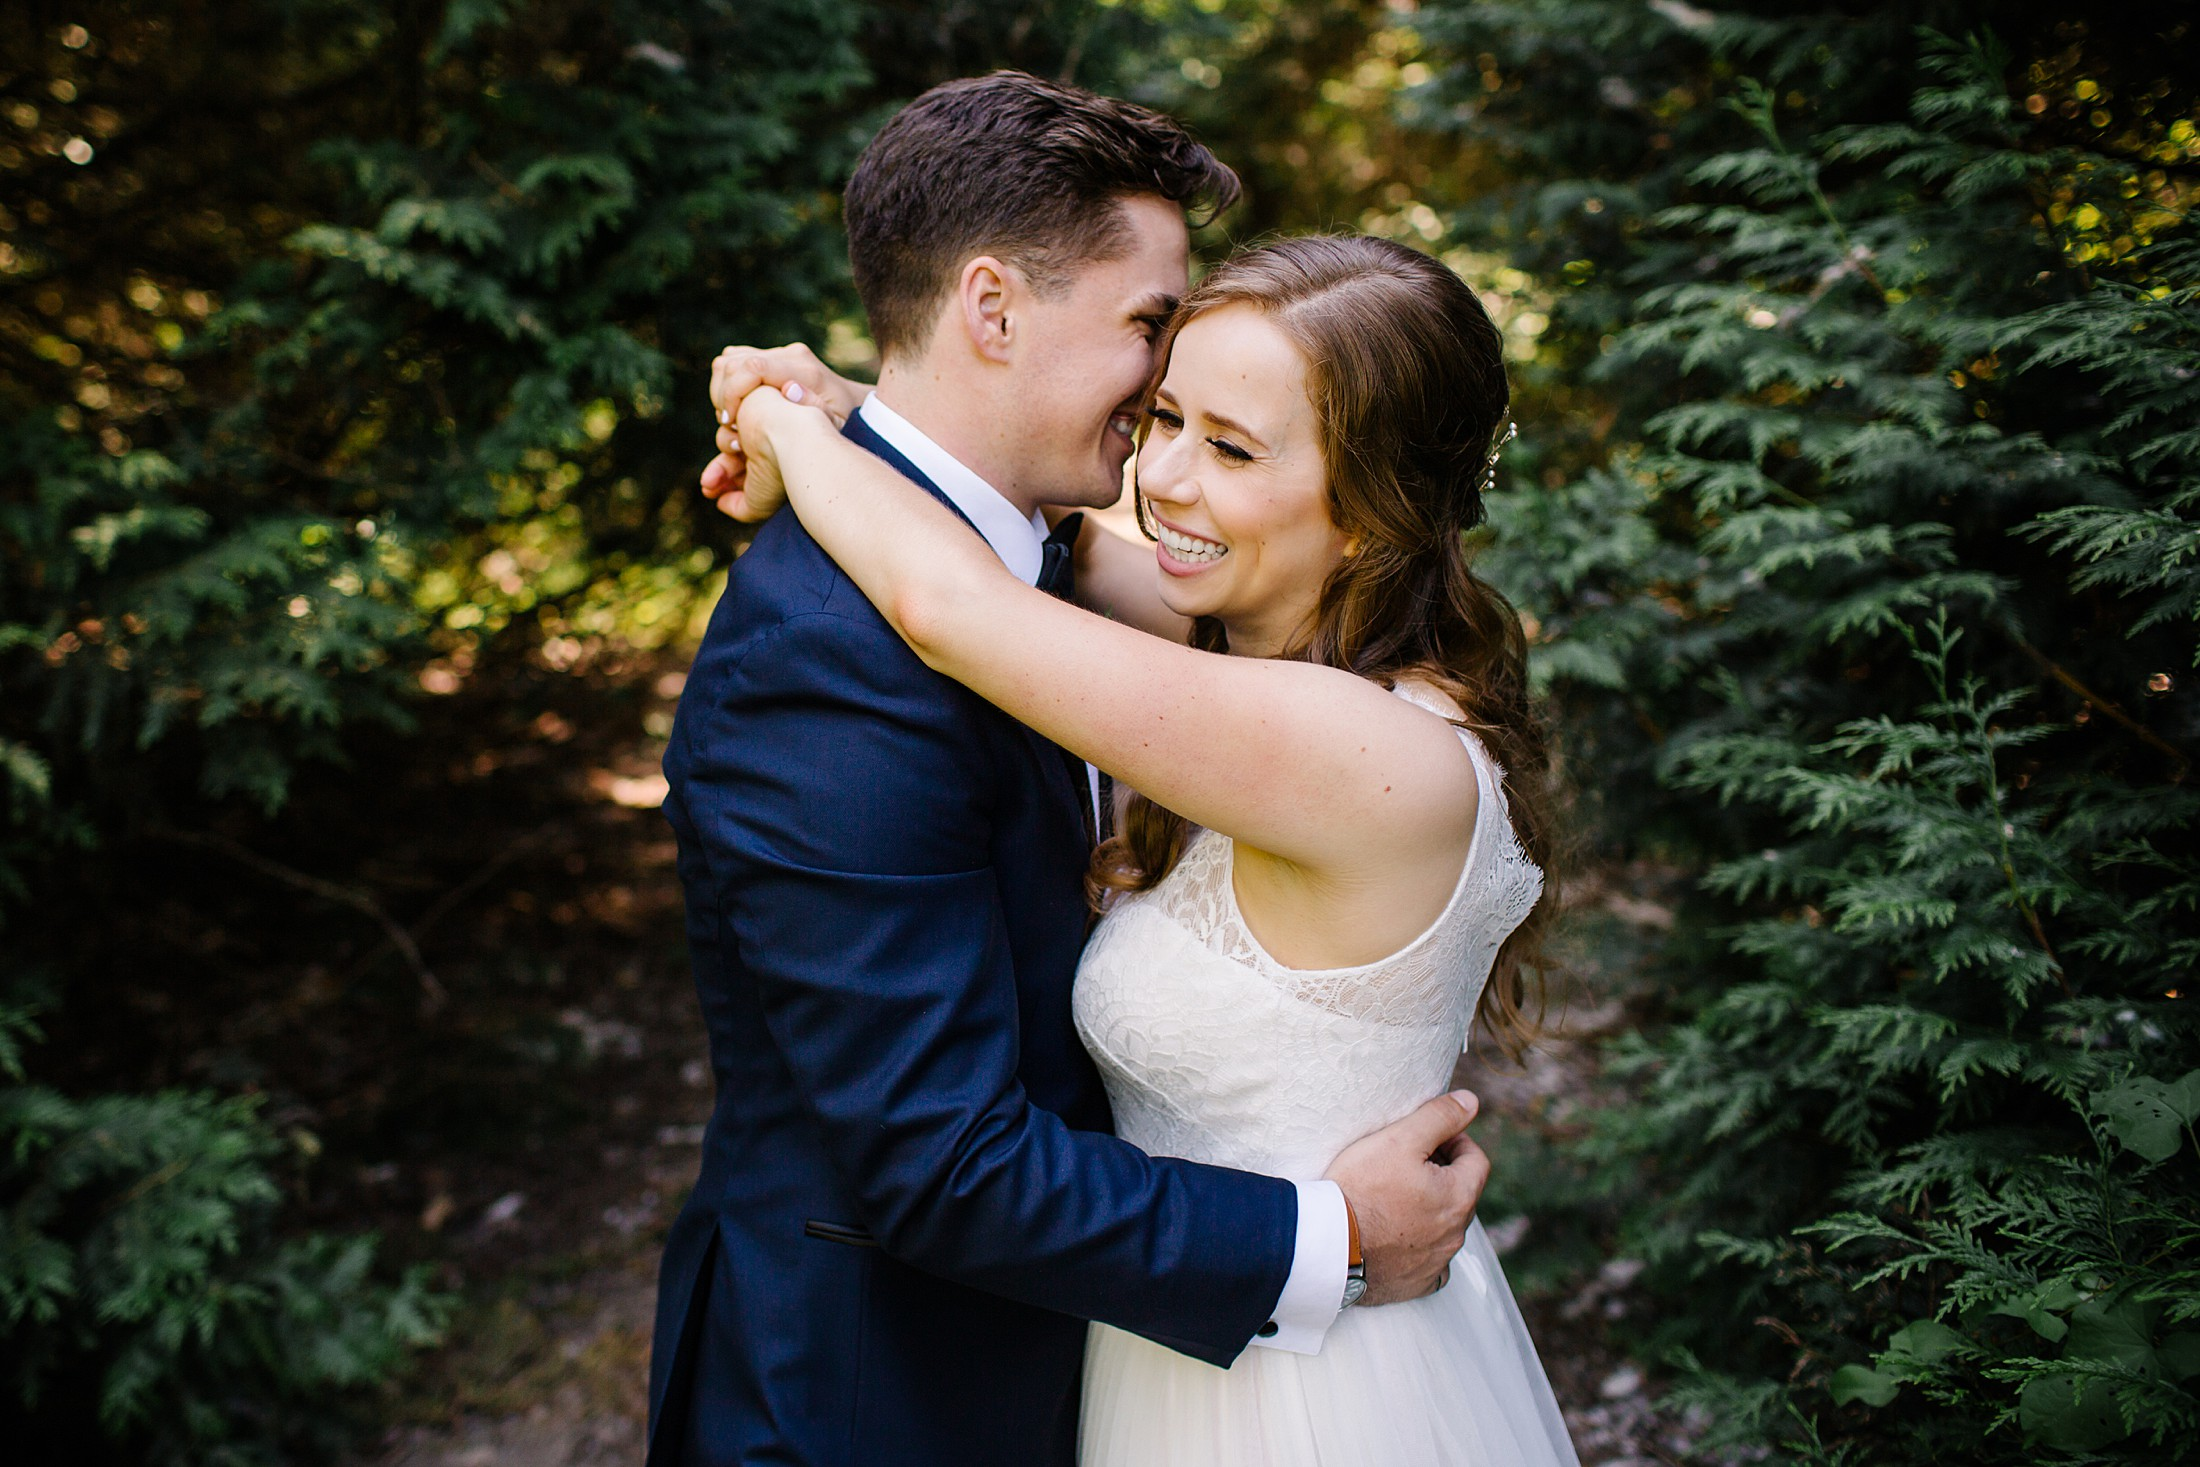 June21.IanEmilie32138_Note Photography Documentary Photographer Wedding Photos Vancouver B.C. Best 2019 2020 Vancouver Island Brock House Restaurant Wedding Jericho Beach Kitsilano.jpg